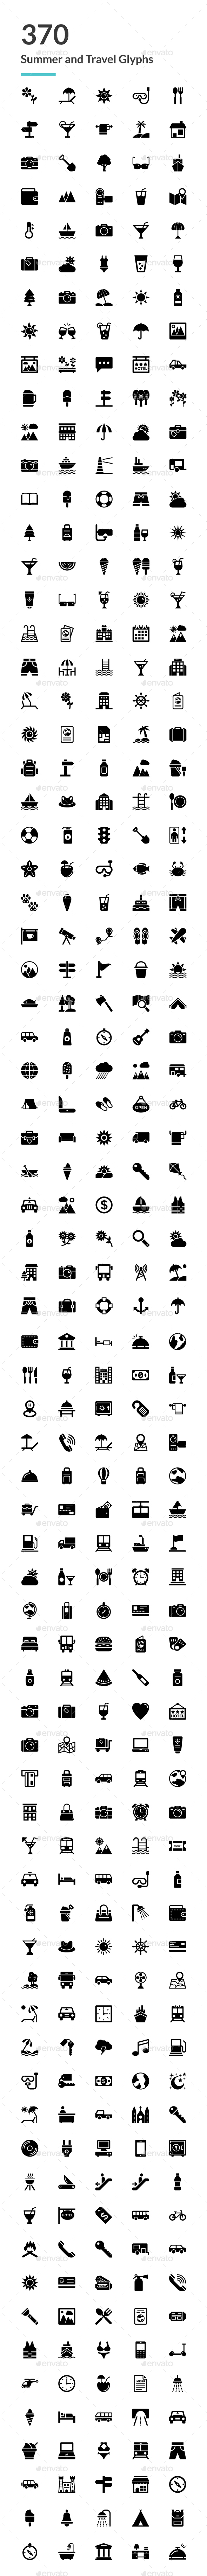 GraphicRiver 370 Summer and Travel Glyph Icons 20751616